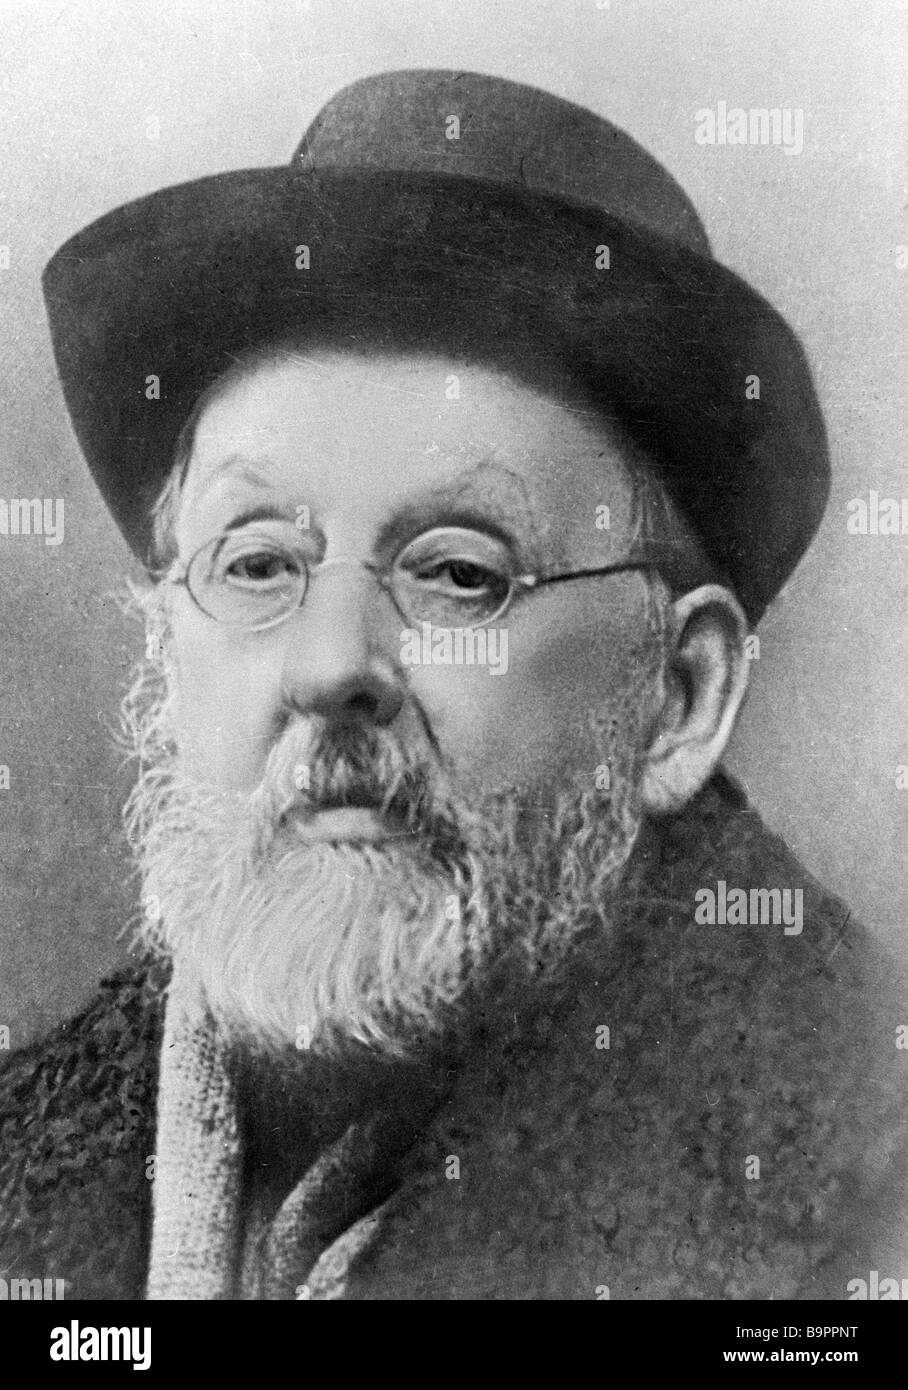 Creator of periodic table image collections periodic table images russian inventor stock photos russian inventor stock images alamy russian soviet scientist and inventor konstantin tsiolkovsky gamestrikefo Images